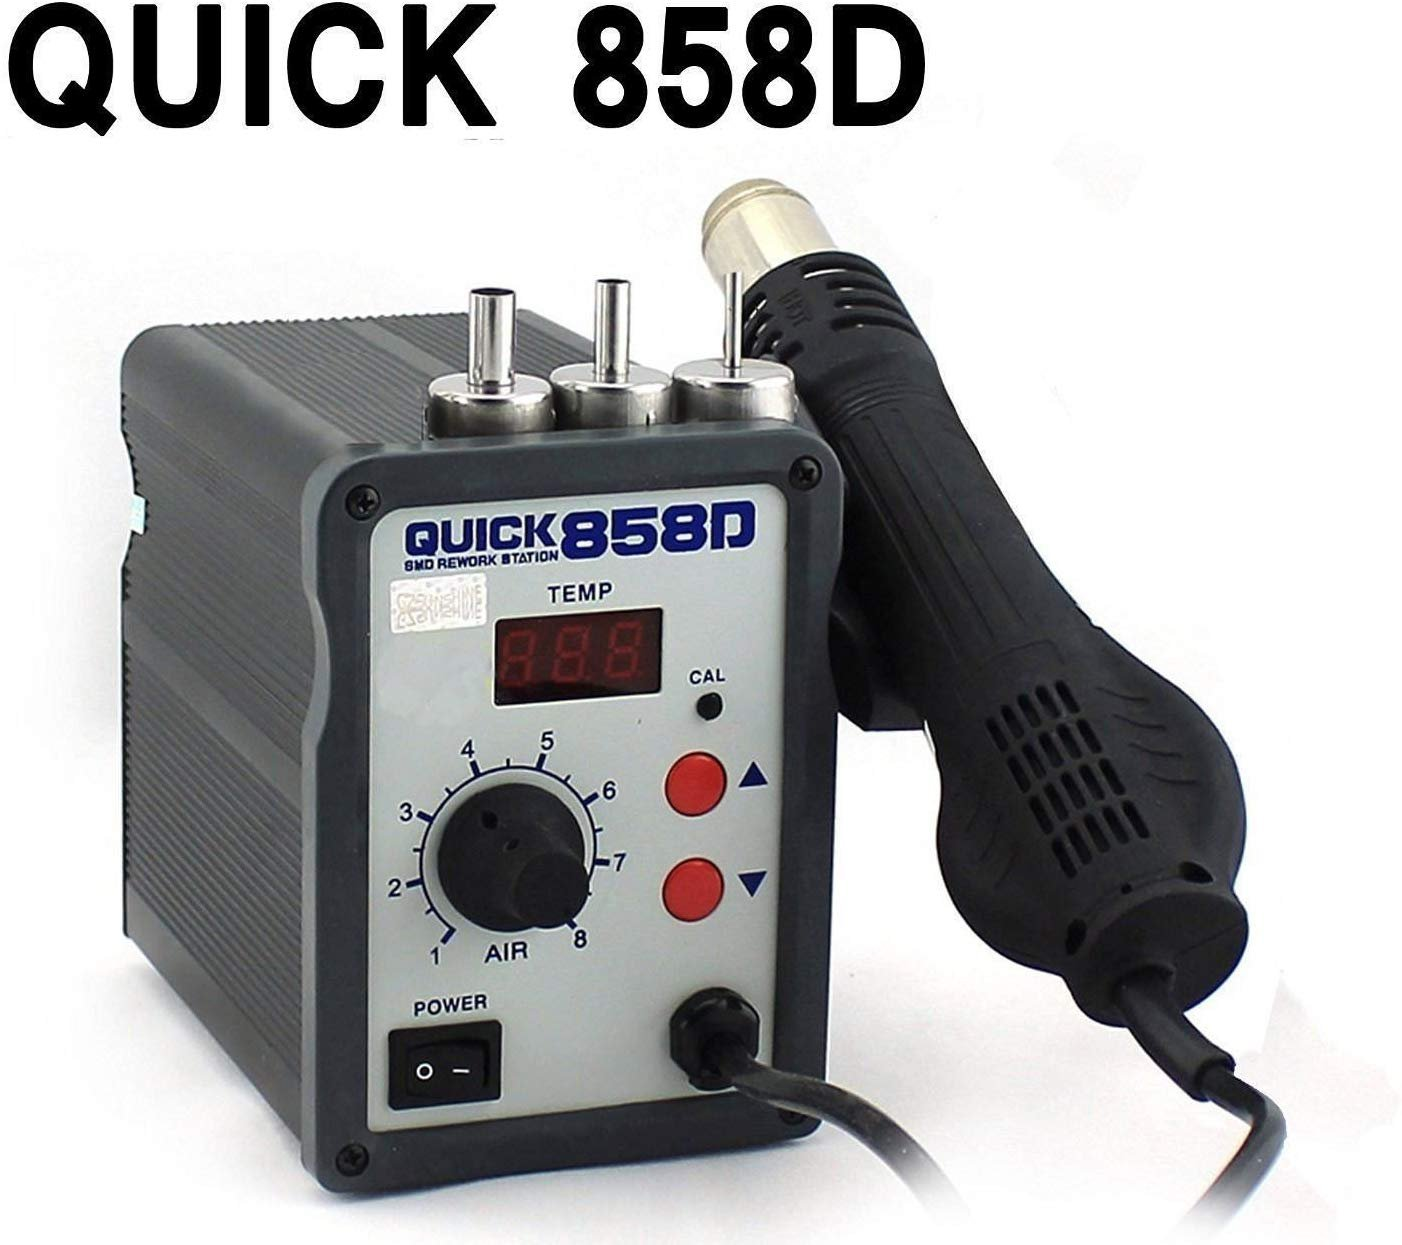 Best Rated In Industrial Robotics Helpful Customer Reviews Temperature Status Indicator Circuit And Hacked Hot Glue Gun Buyyart 858d New Quick Anti Electrostatic Air Rework Station Smd Product Image